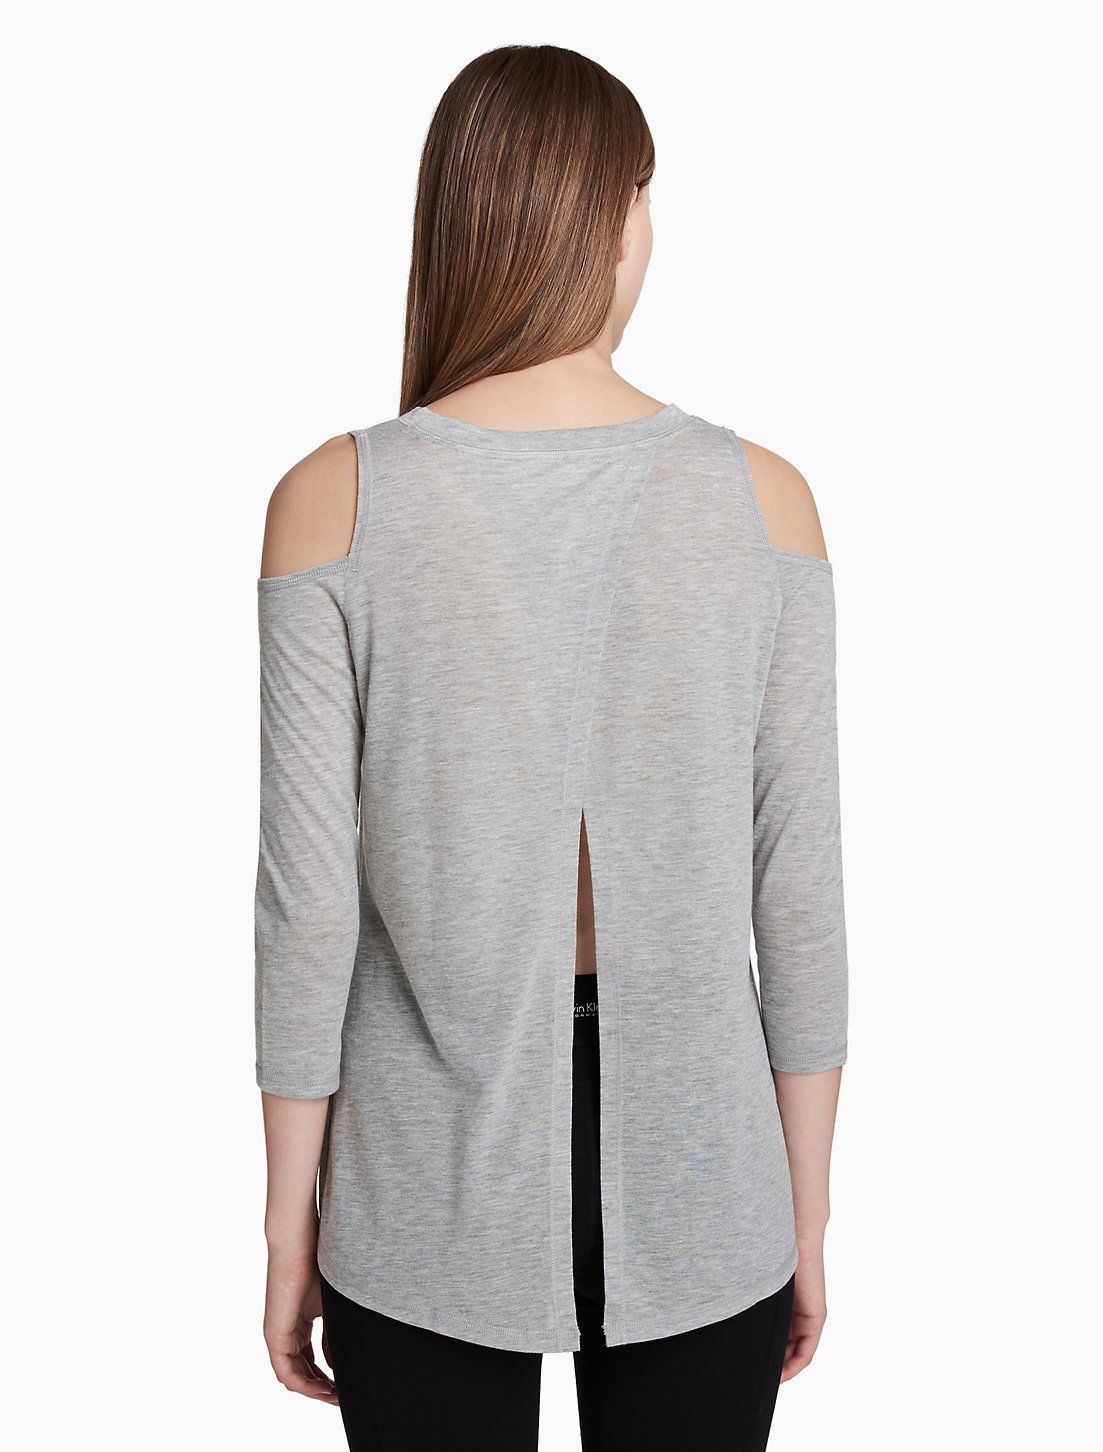 Calvin Klein Performance Cold-Shoulder Tie-Back Top PF8T2828 Grey Citrus Yellow image 6